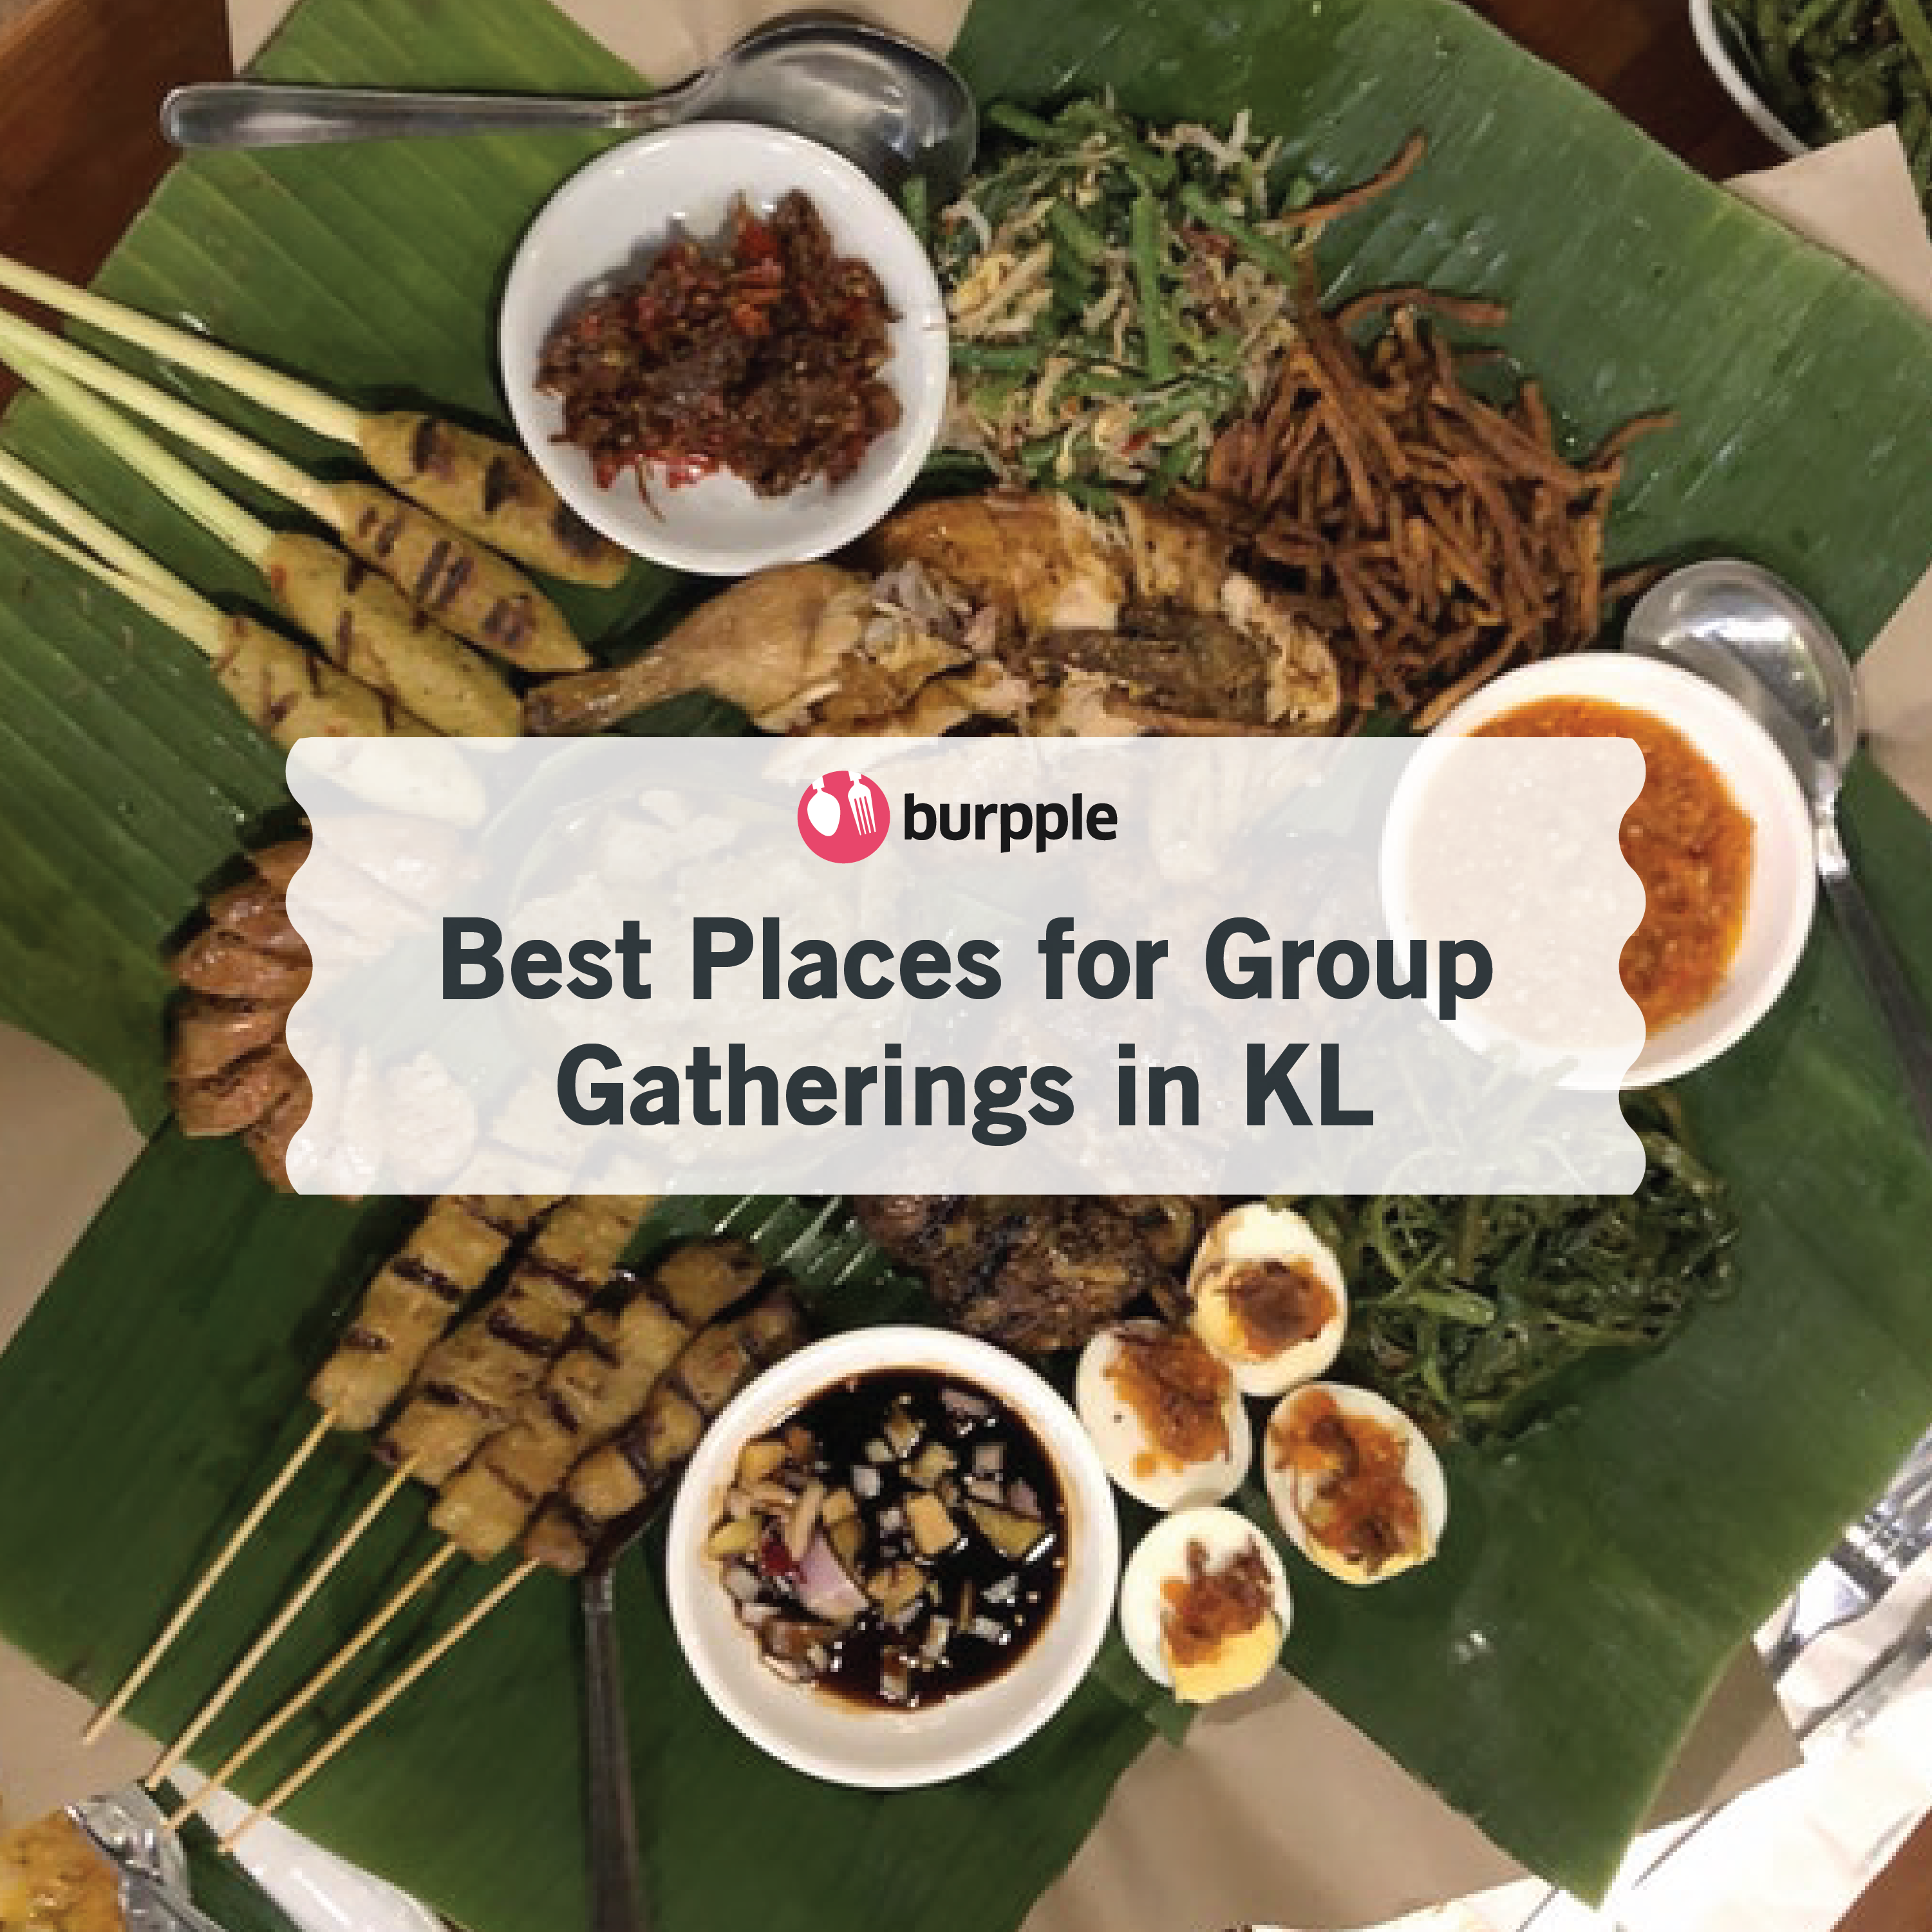 Best Places for Group Gatherings in KL